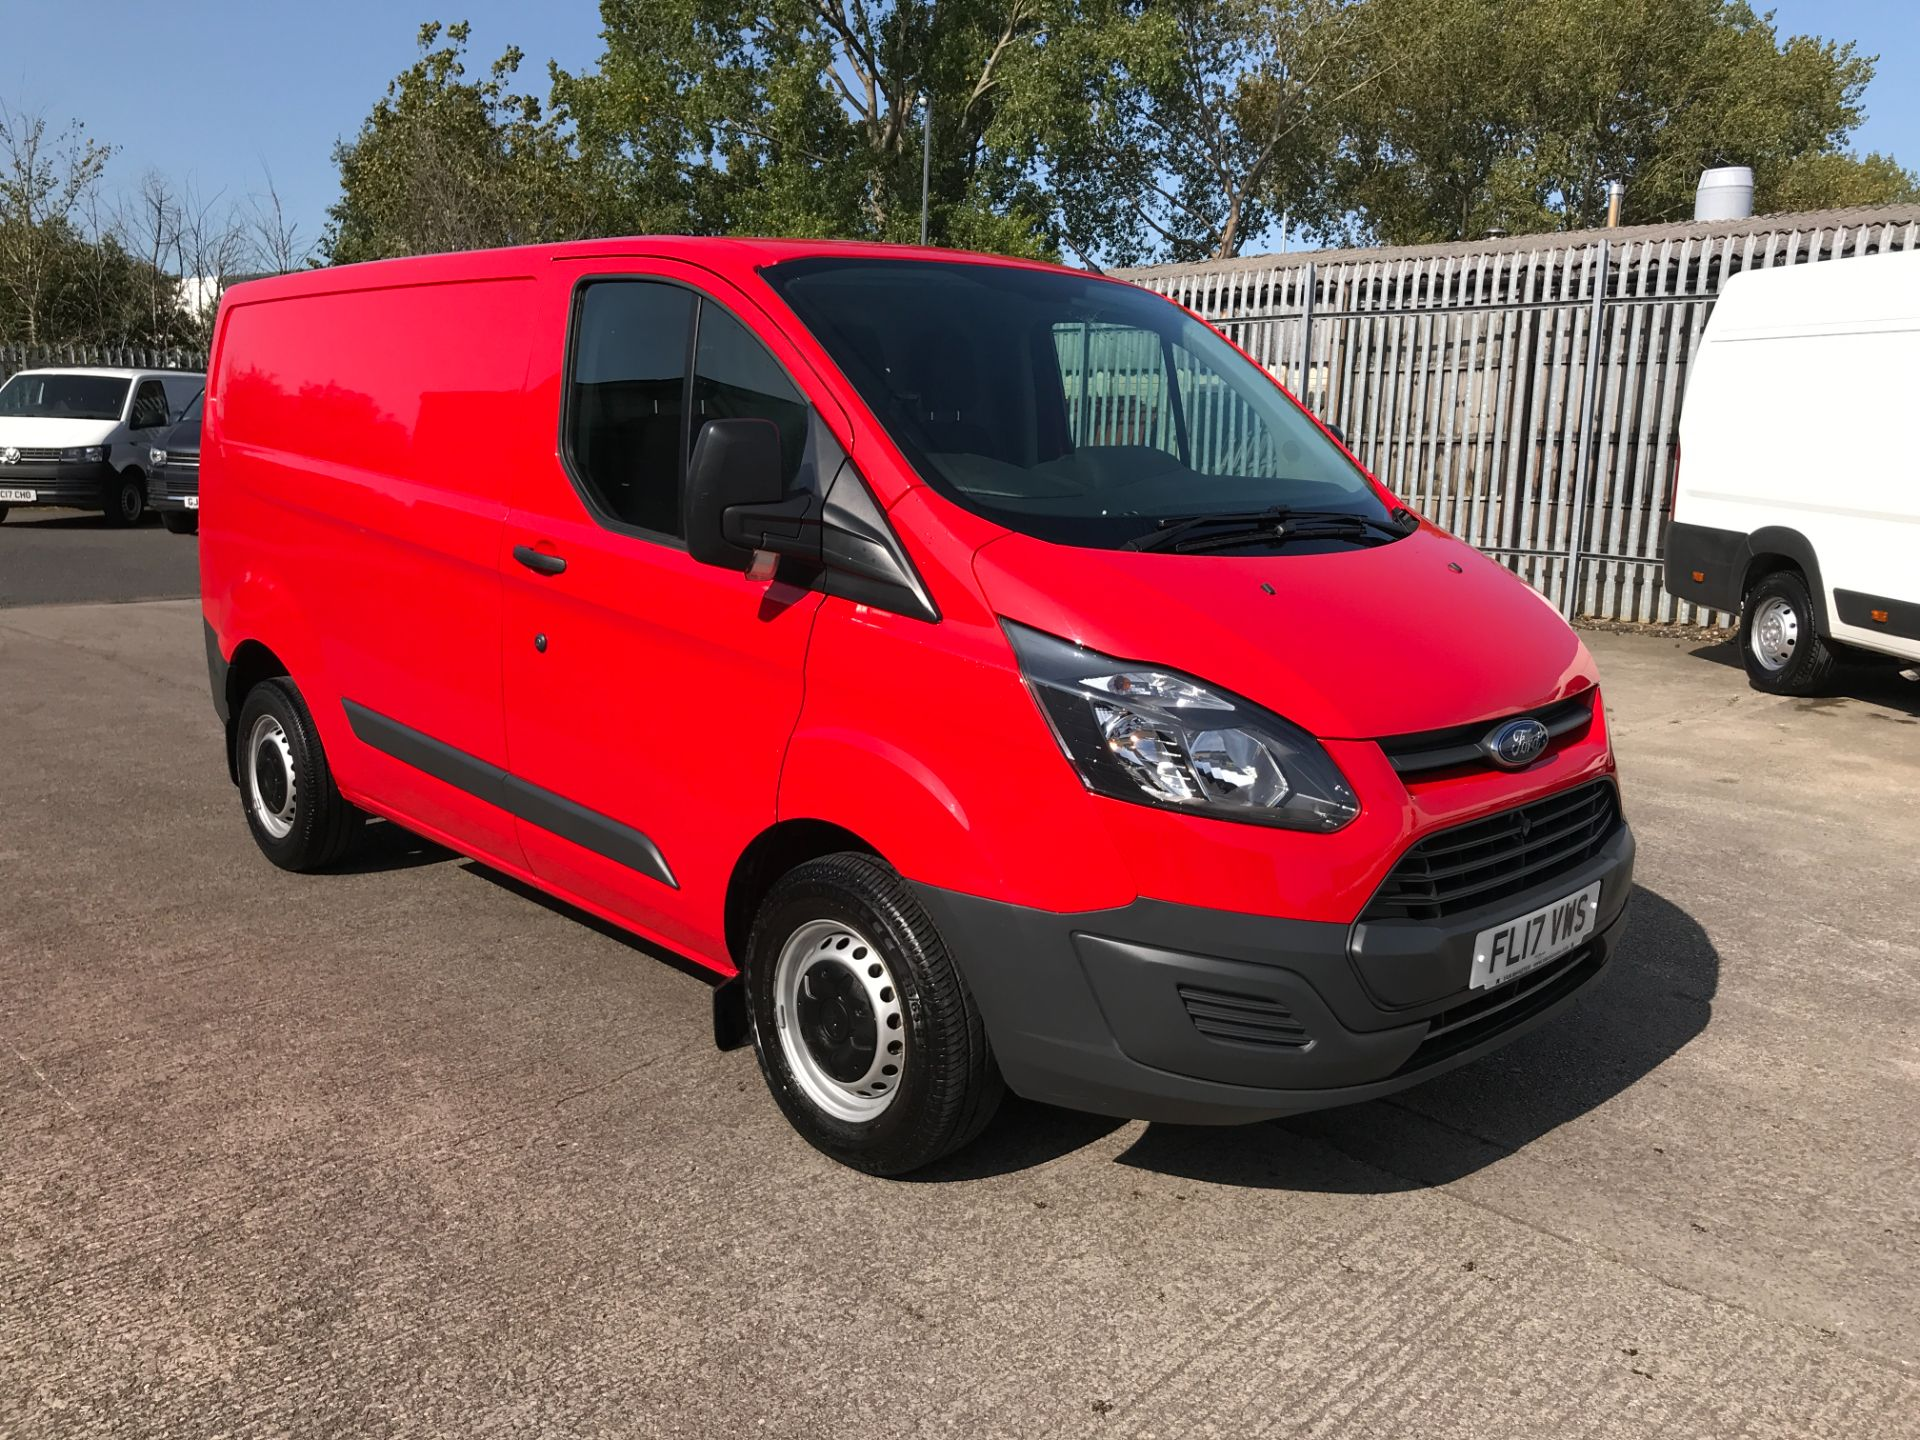 2017 Ford Transit Custom 290 L1 2.0TDCI 105PS LOW ROOF EURO 6 (FL17VWS)